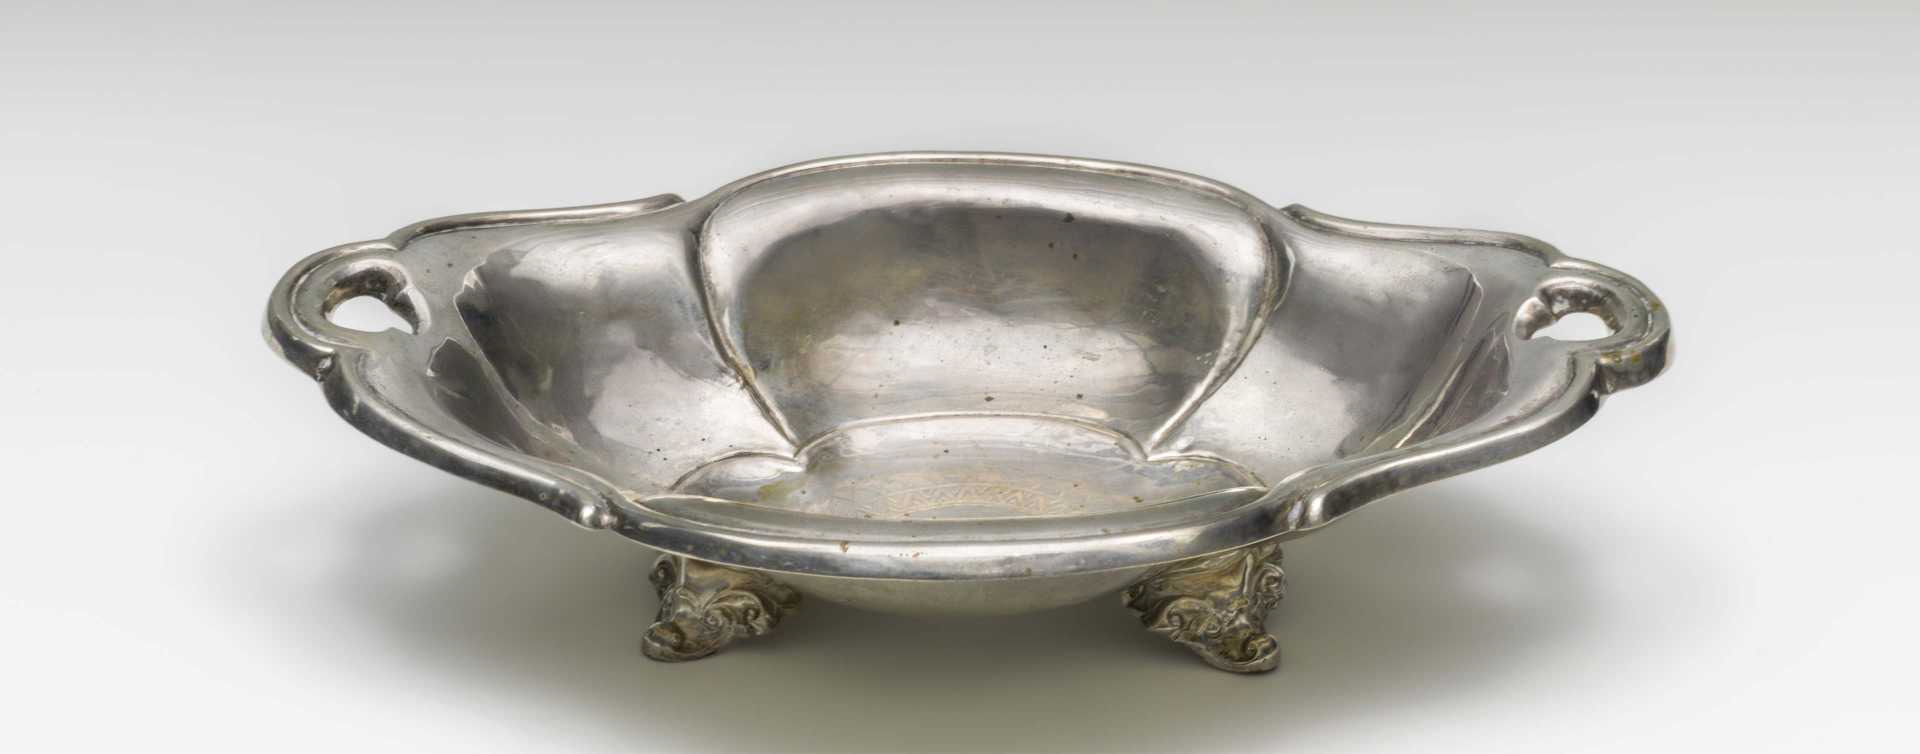 Bowl with two handles and feet, photographed diagonally from above